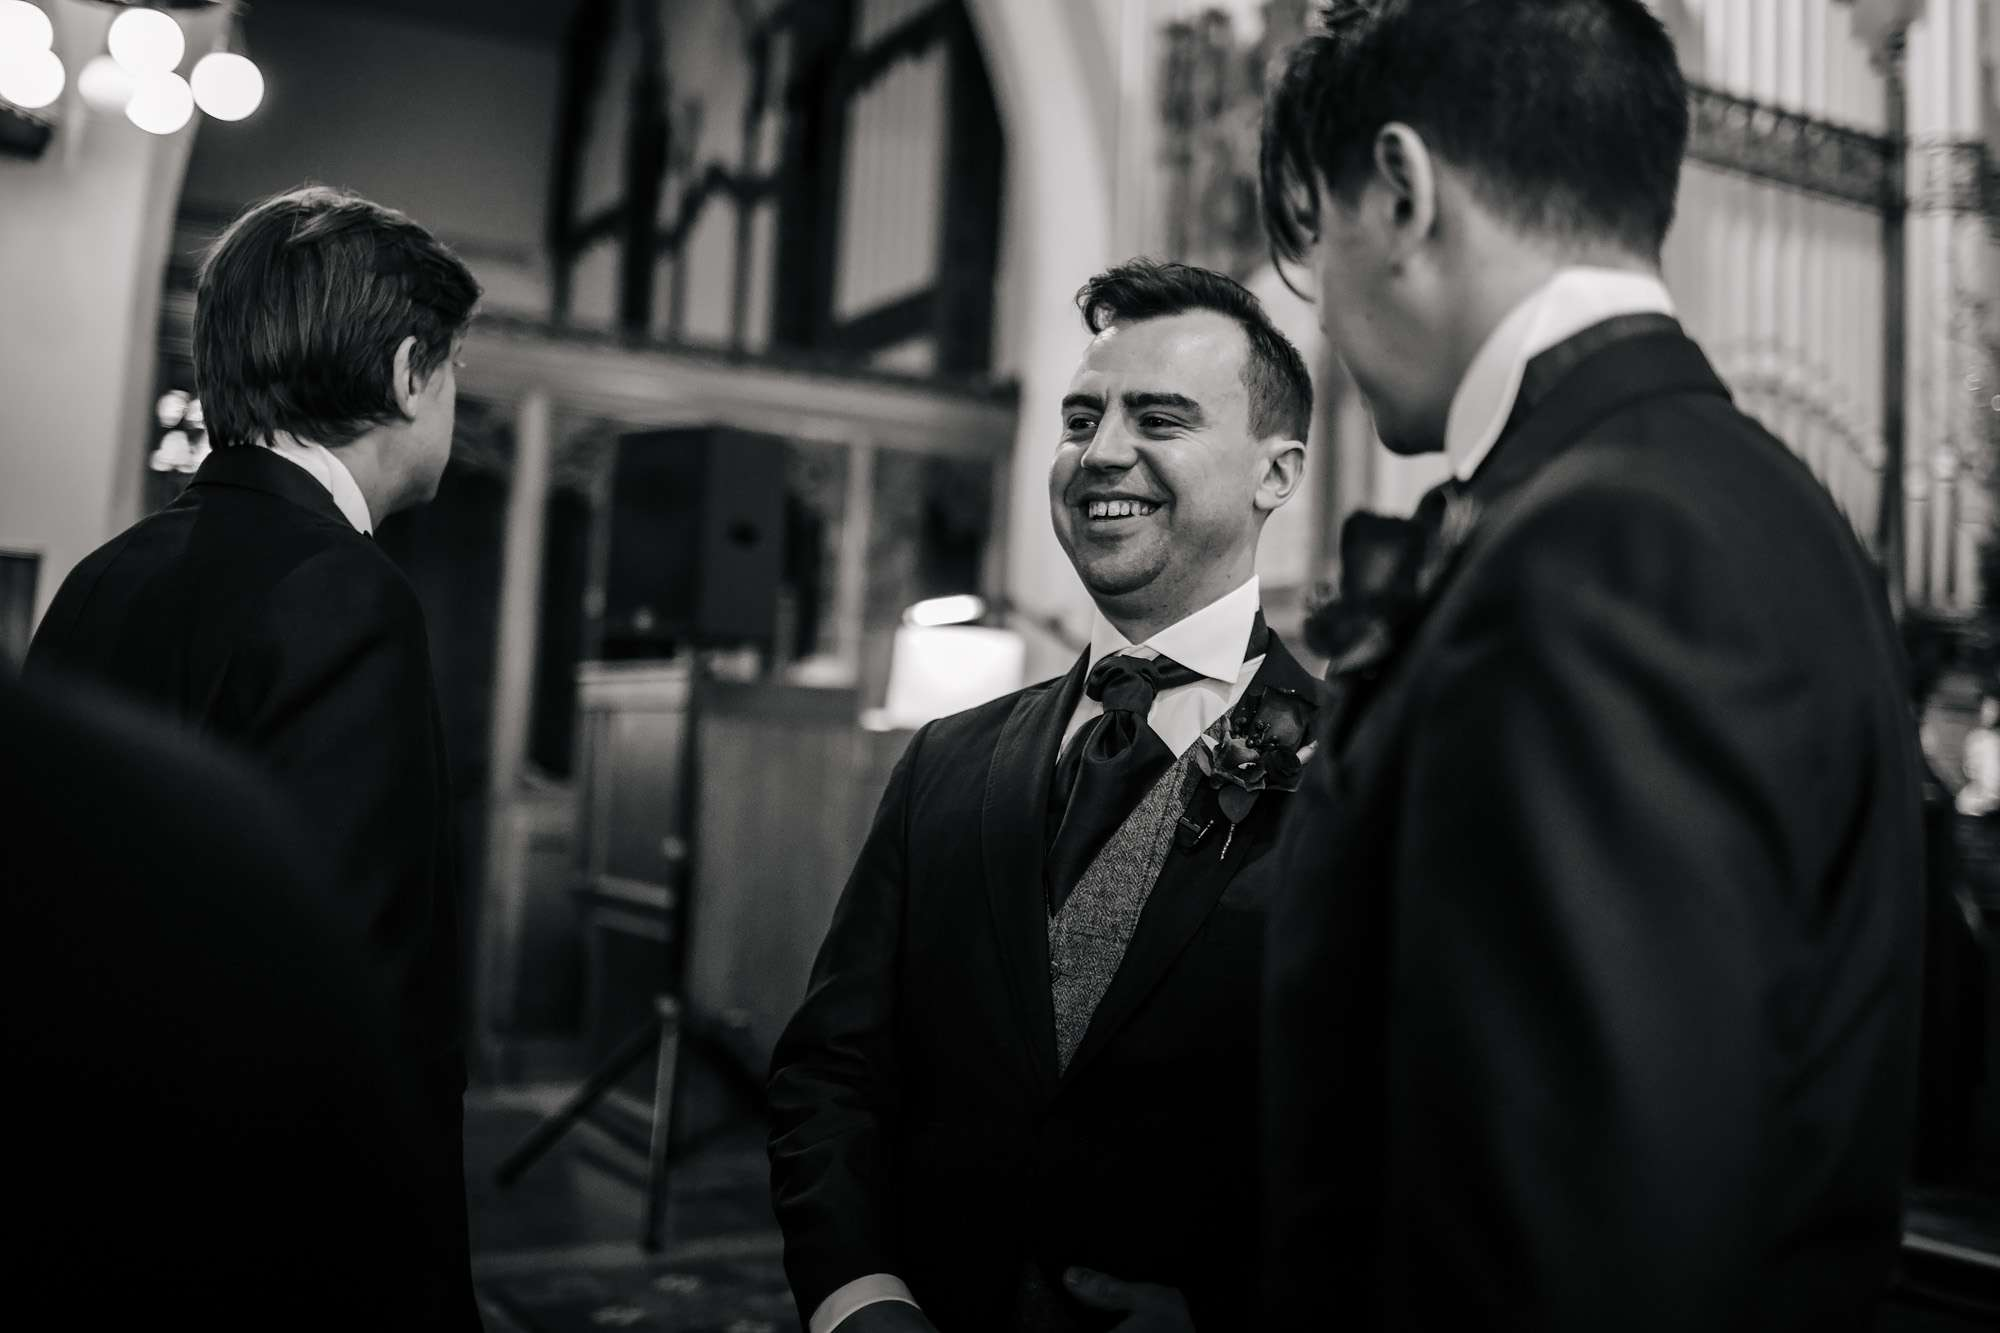 Groom waits in the church for his bride at a wedding